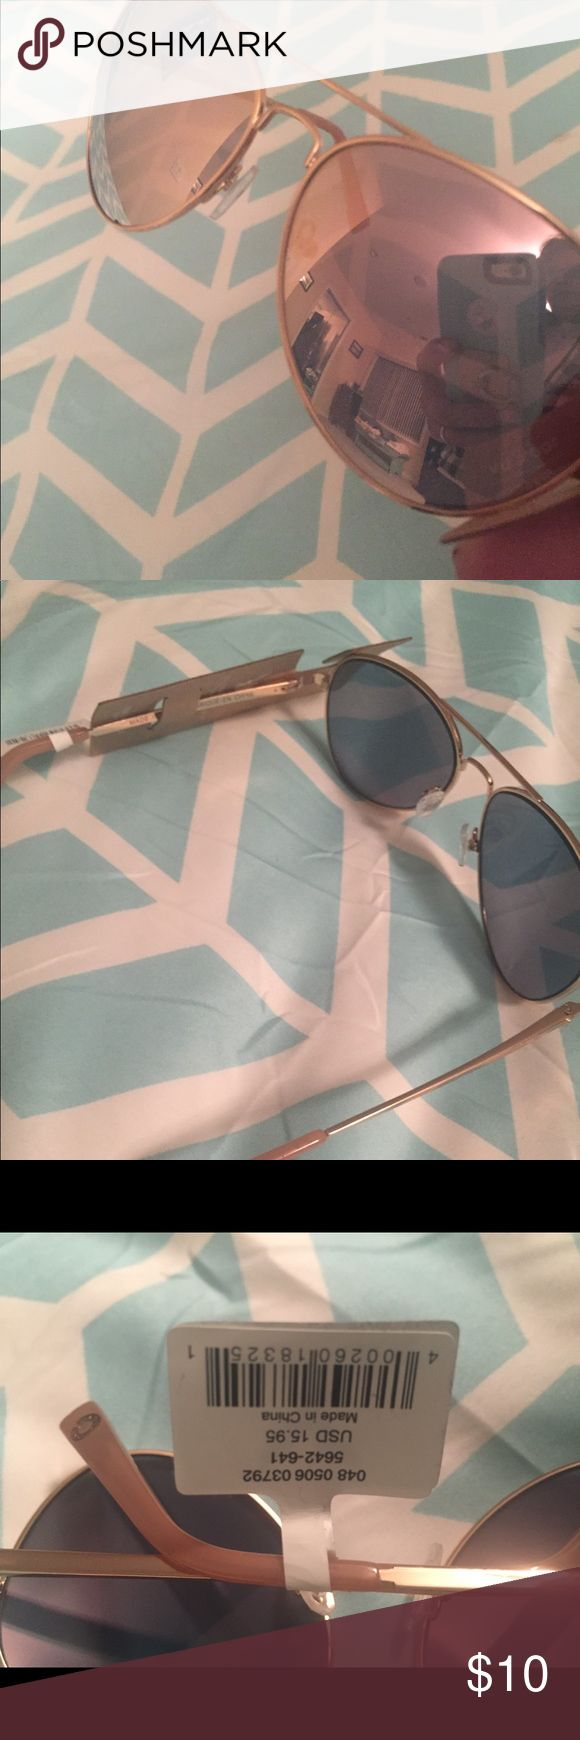 American Eagle sunglasses NWT American Eagle aviator sunglasses. American Eagle Outfitters Other